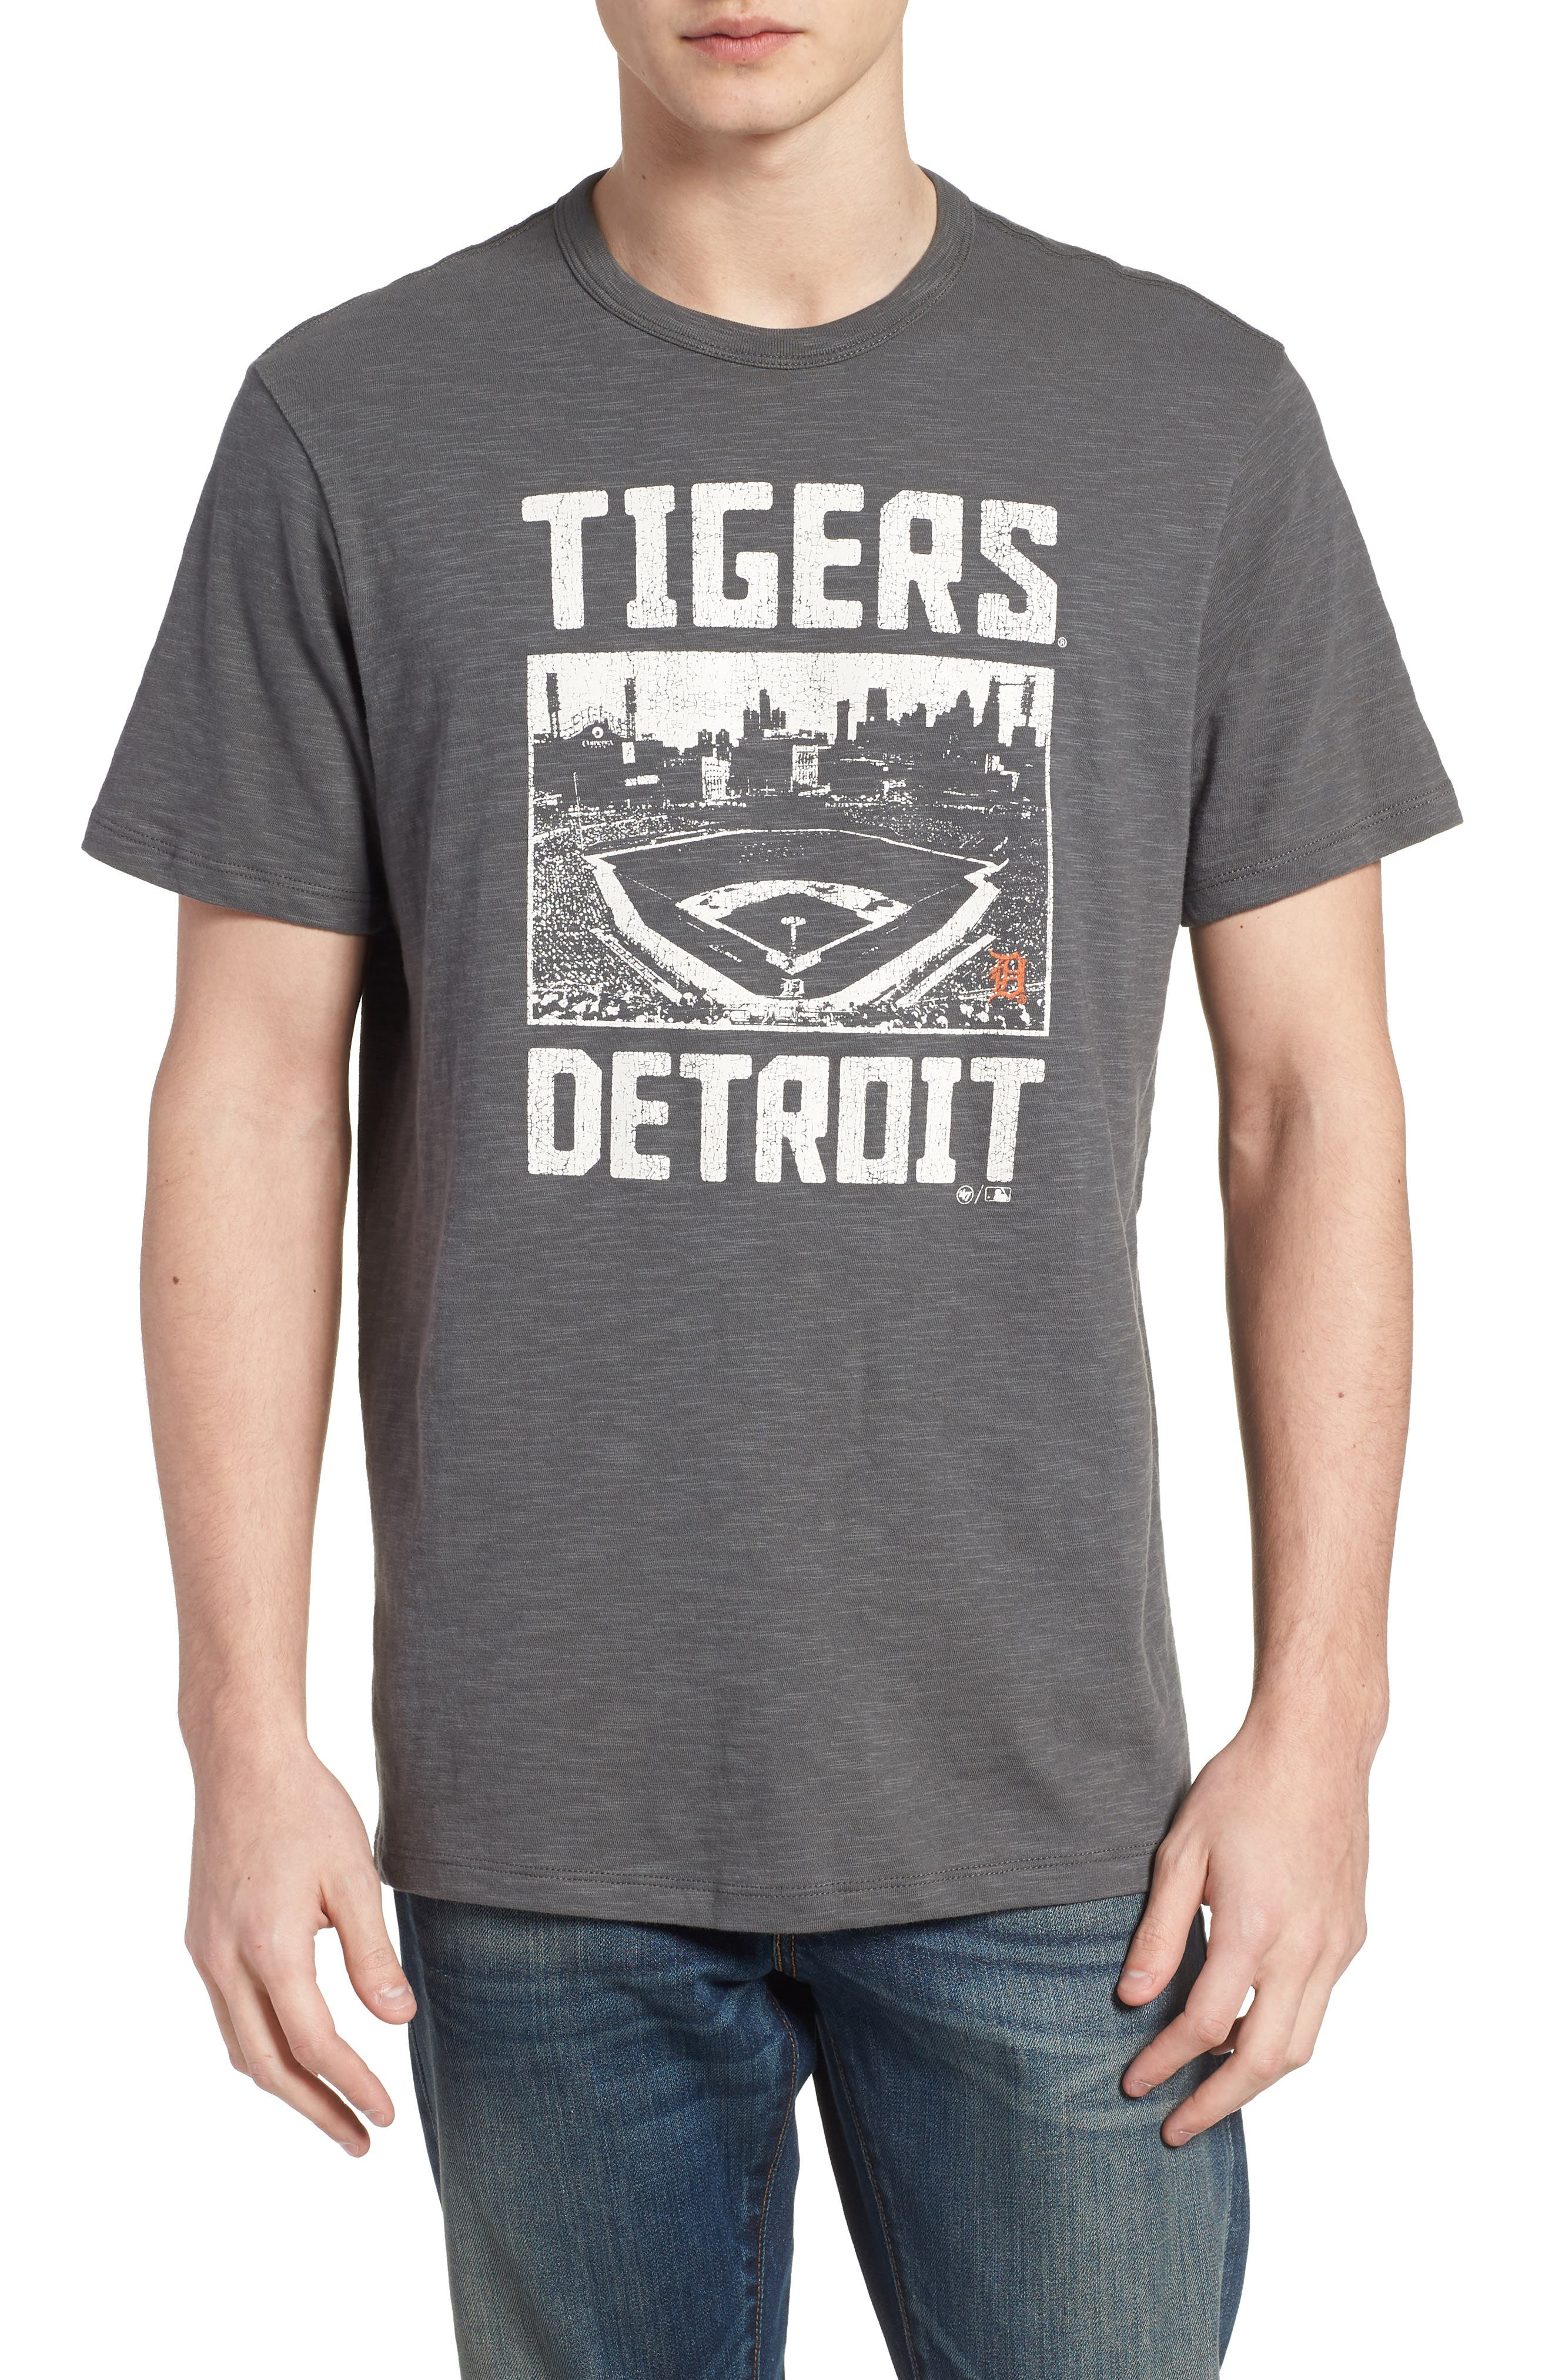 MLB Overdrive Scrum Detroit Tigers T-Shirt,                         Main,                         color, 020